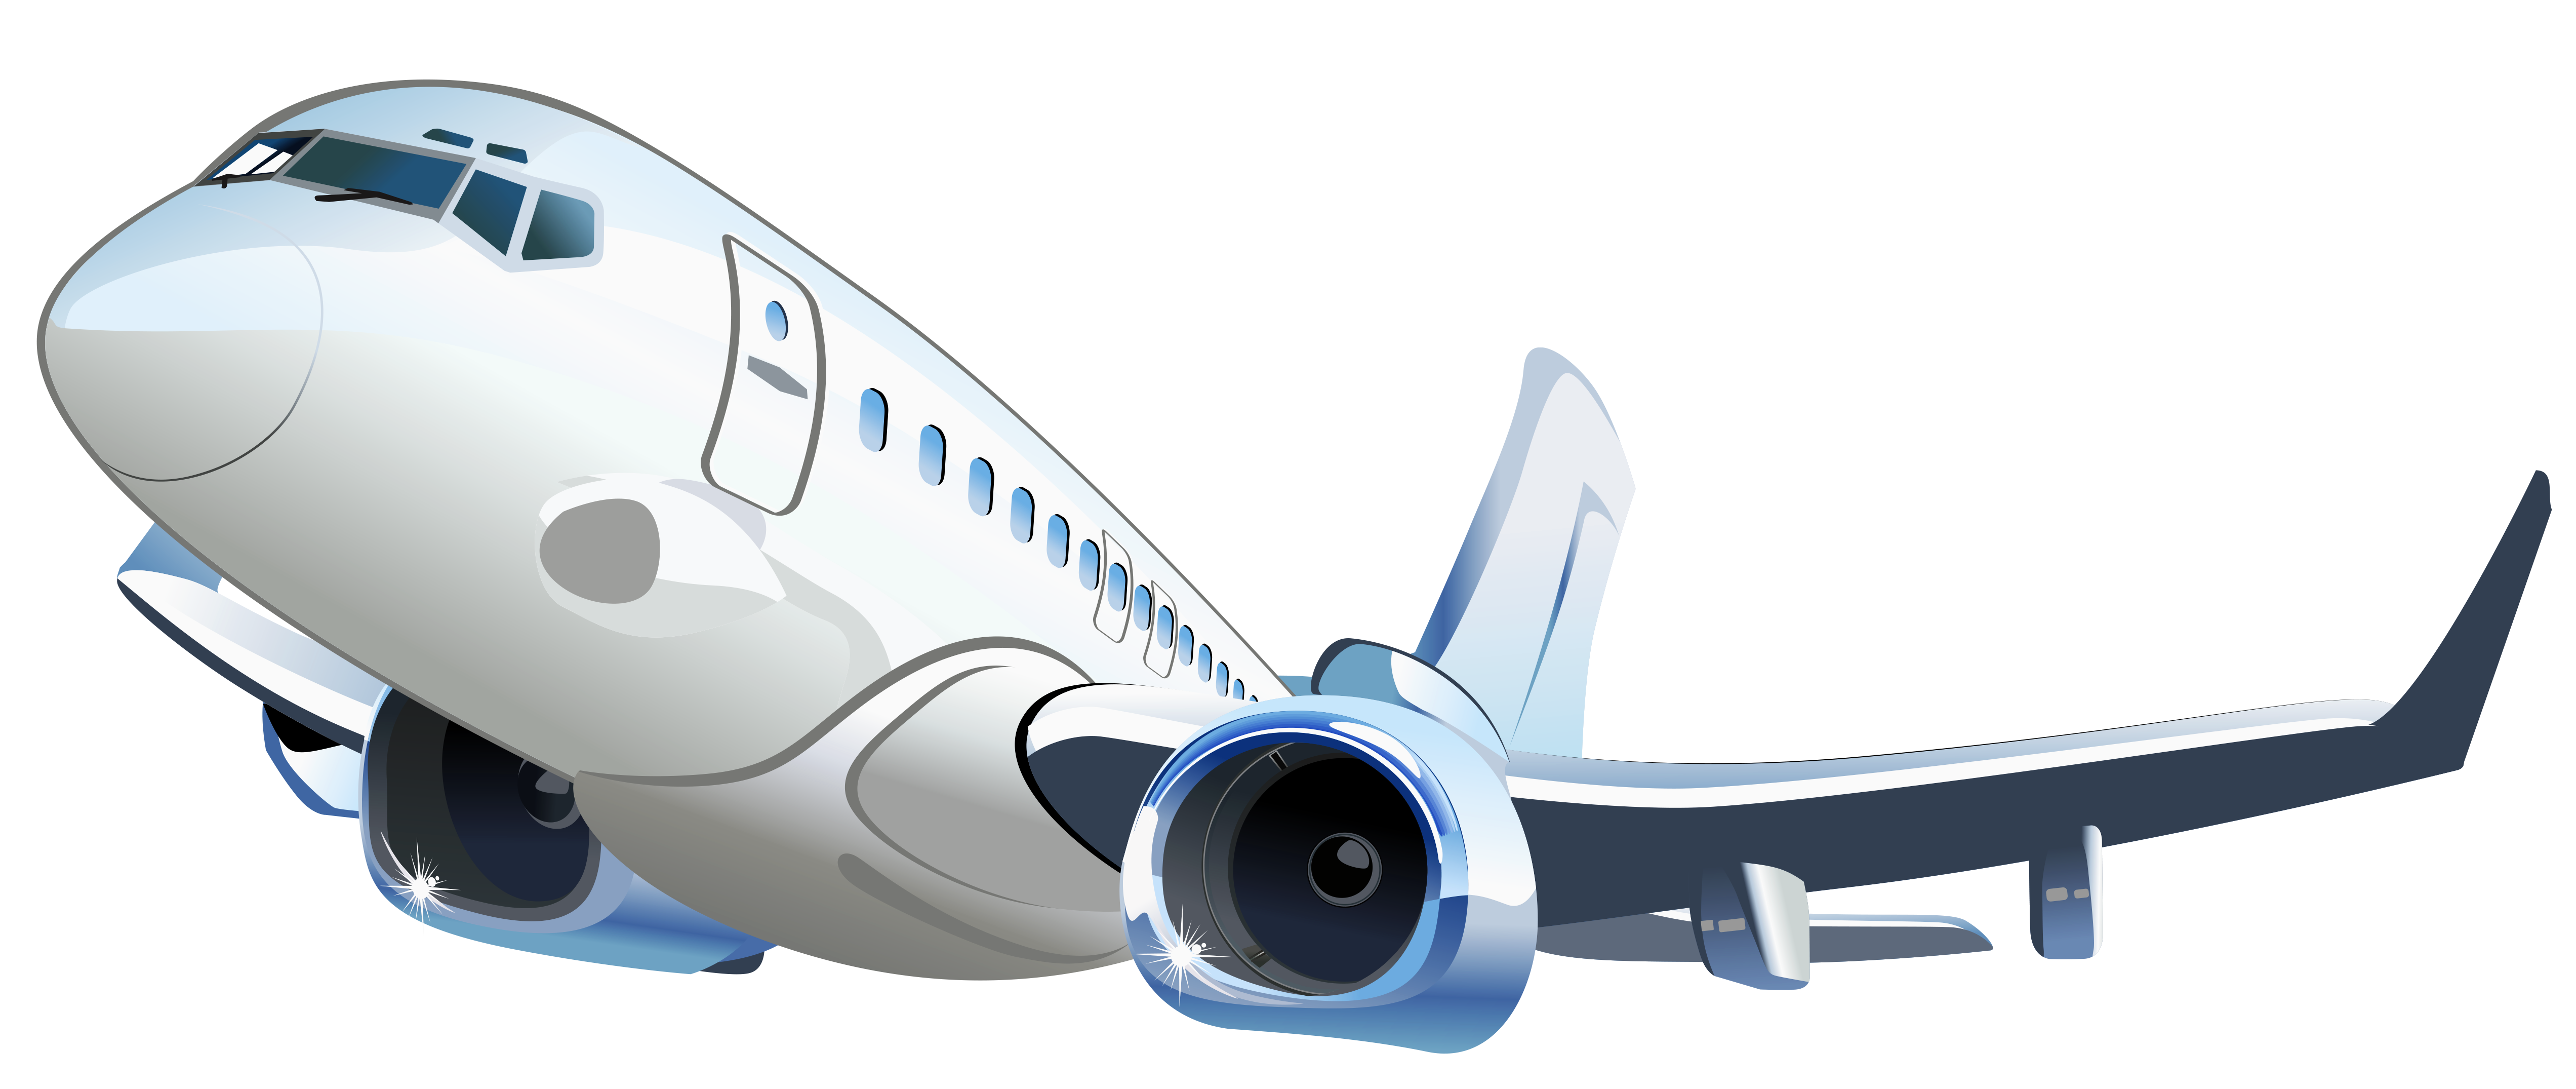 Airport vector aerospace. Airplane transparent clipart gallery